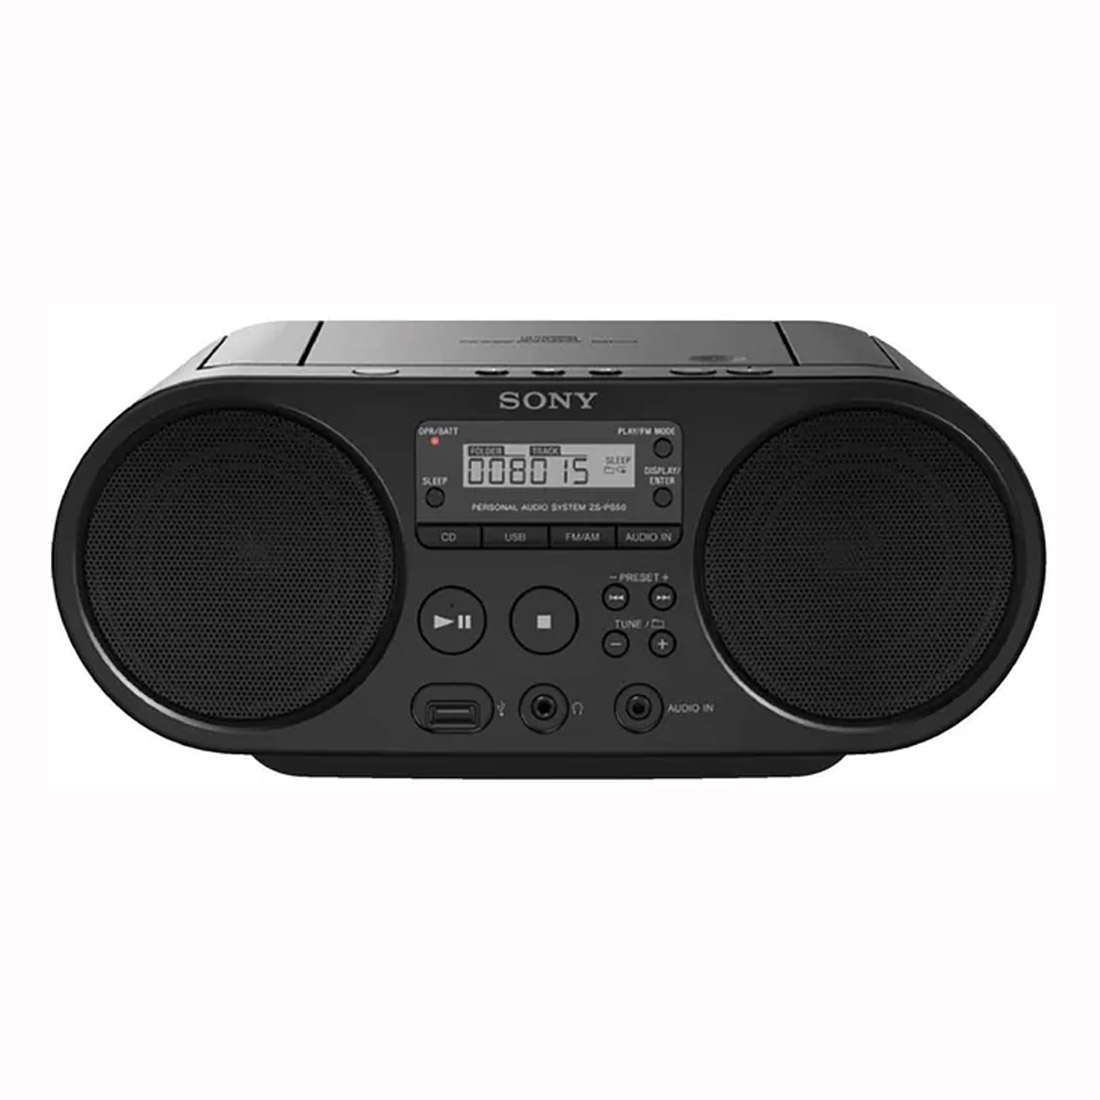 Sony ZS-PS50 CD Boombox with AM/FM Radio Tuner & USB Playback - Black